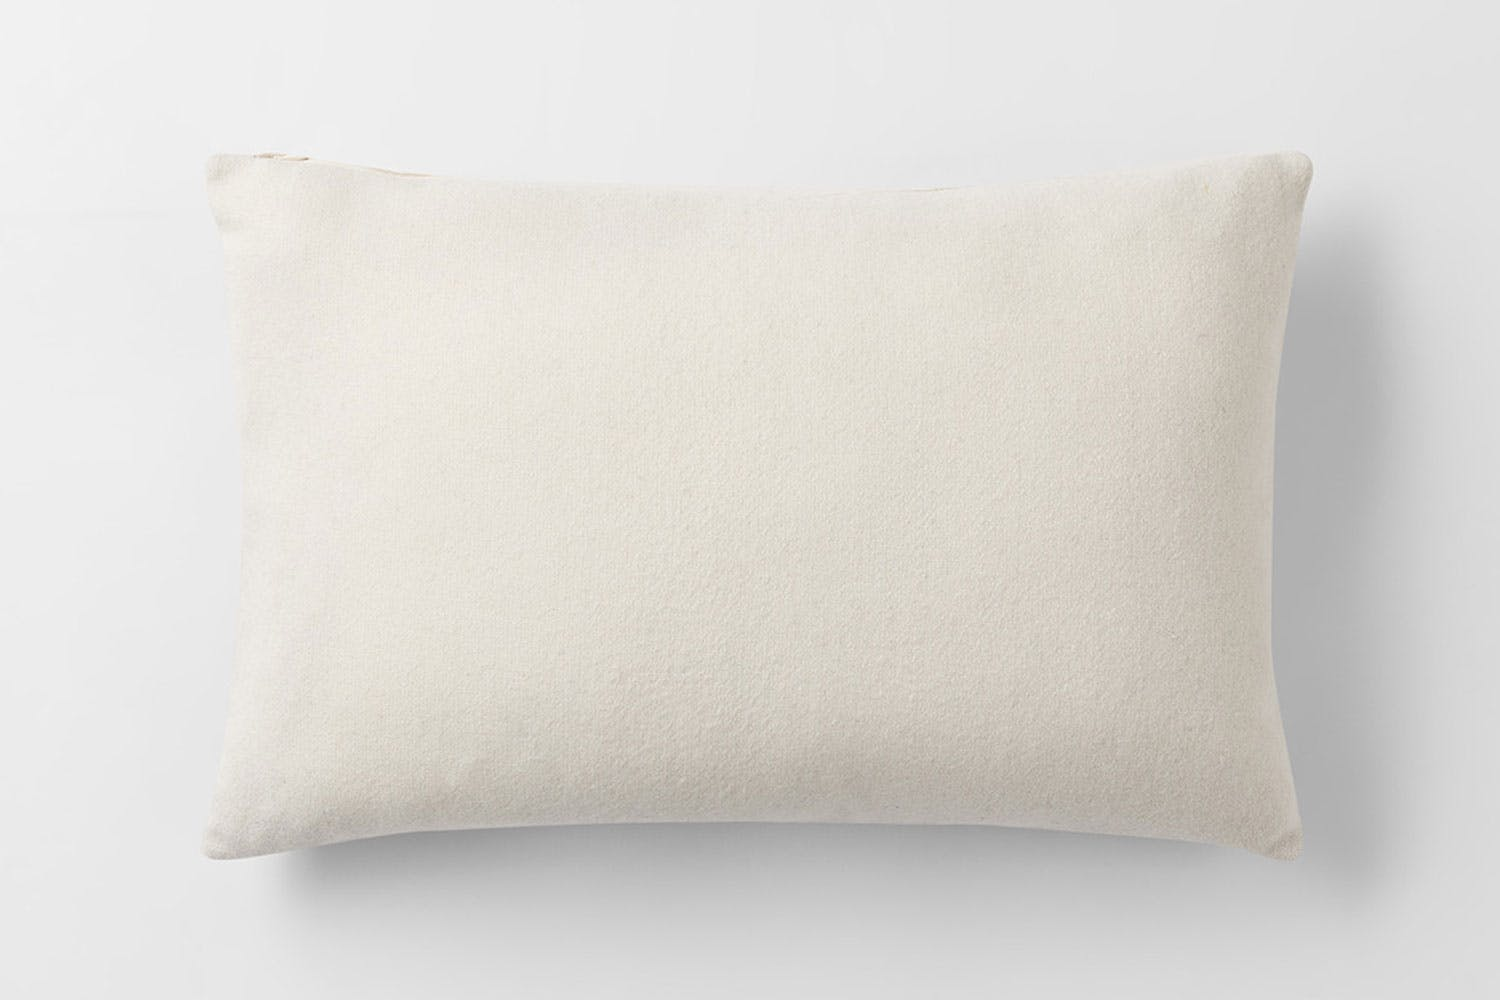 rossmore carbon leather cushion by sheridan harvey norman new zealand